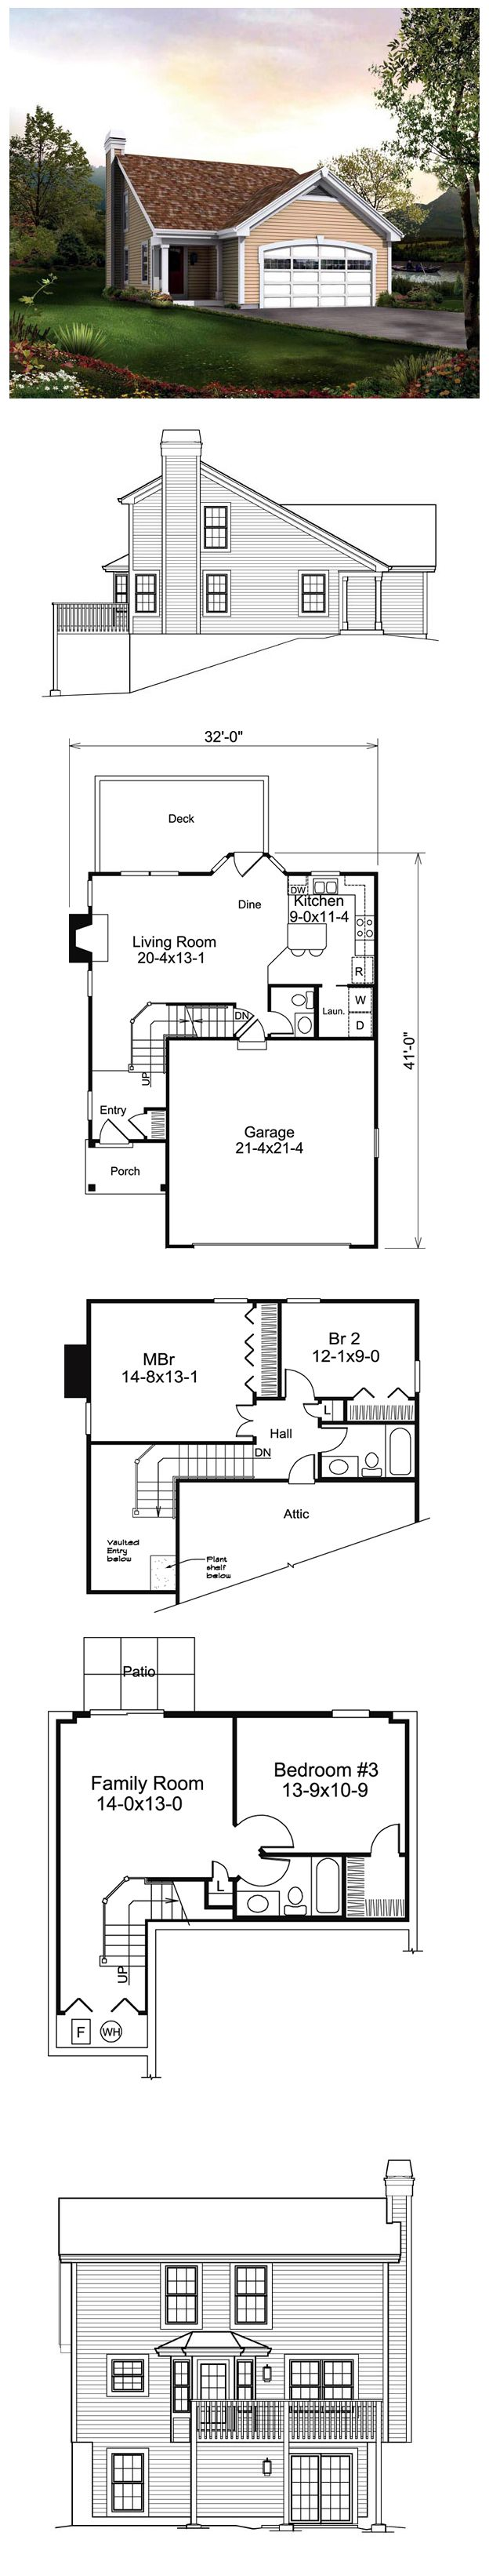 17 best images about saltbox house plans on pinterest for L shaped open floor plan